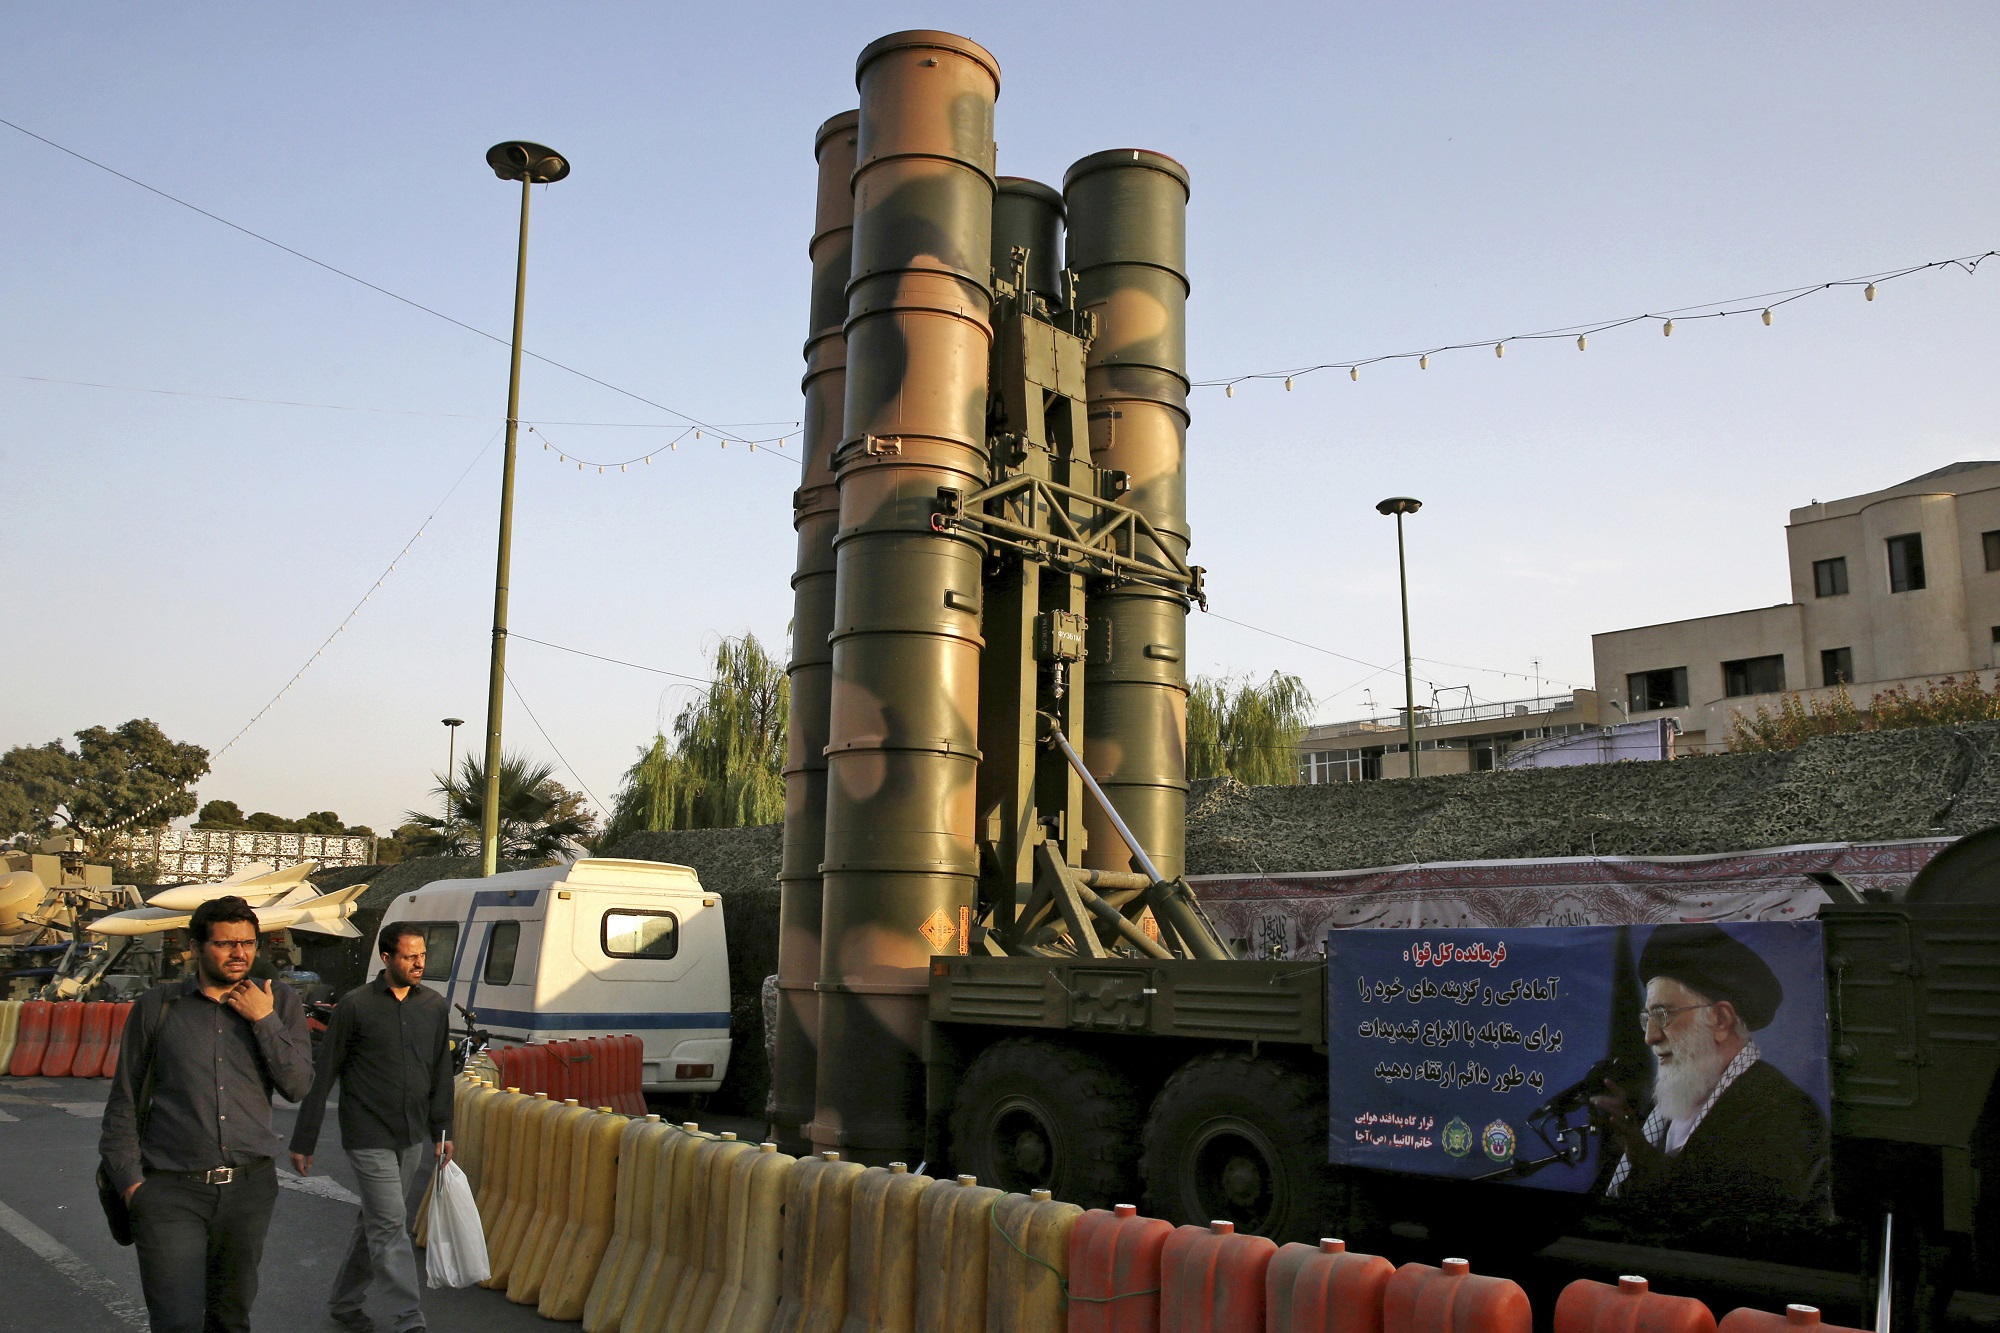 In first, Iran publicly displays S-300 air defense missile system